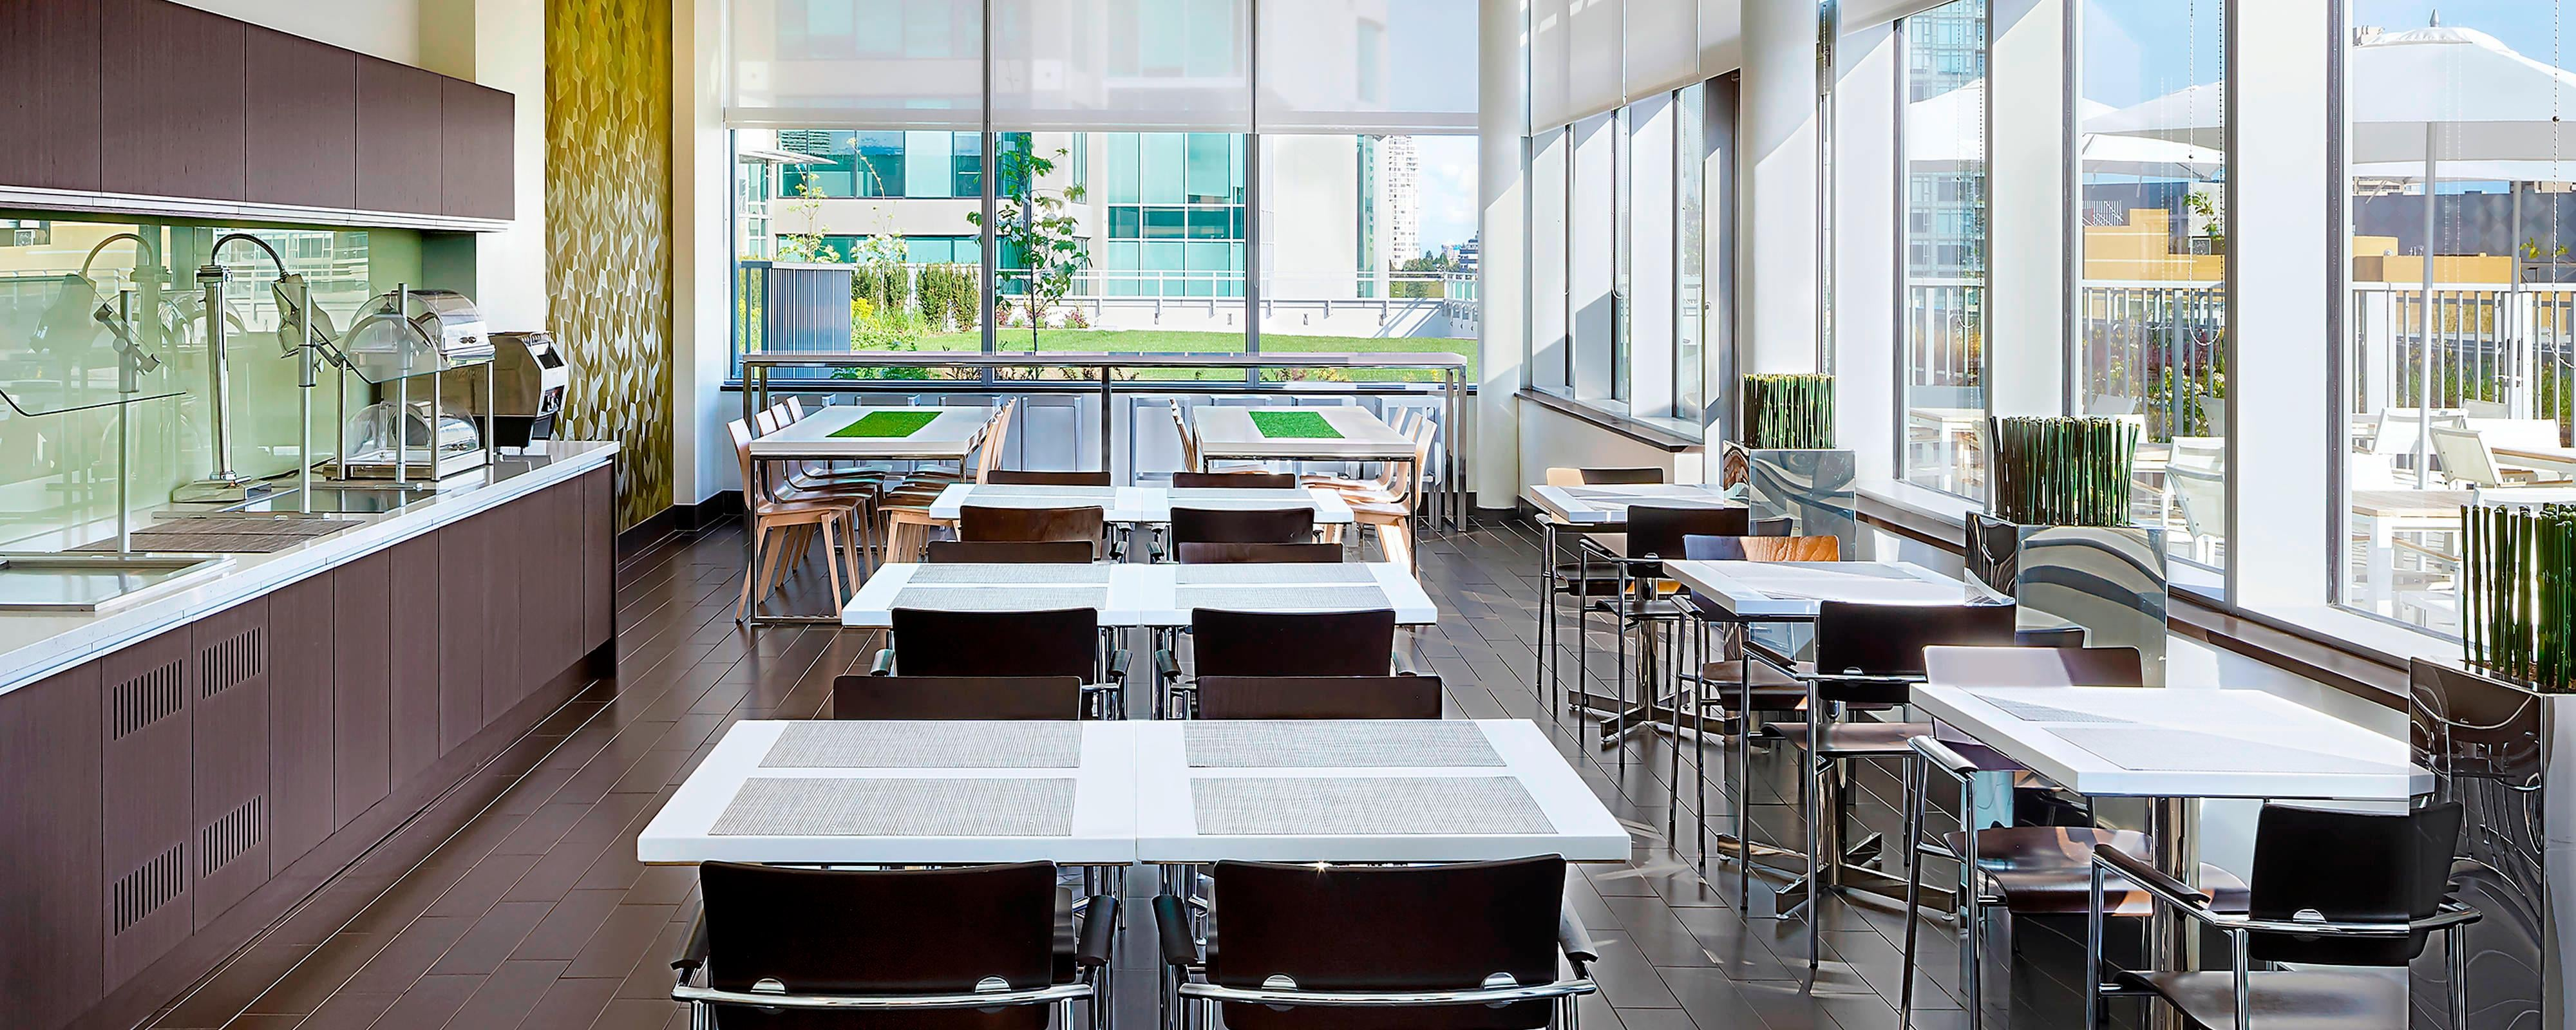 Hotel Dining Restaurants Element Vancouver Metrotown